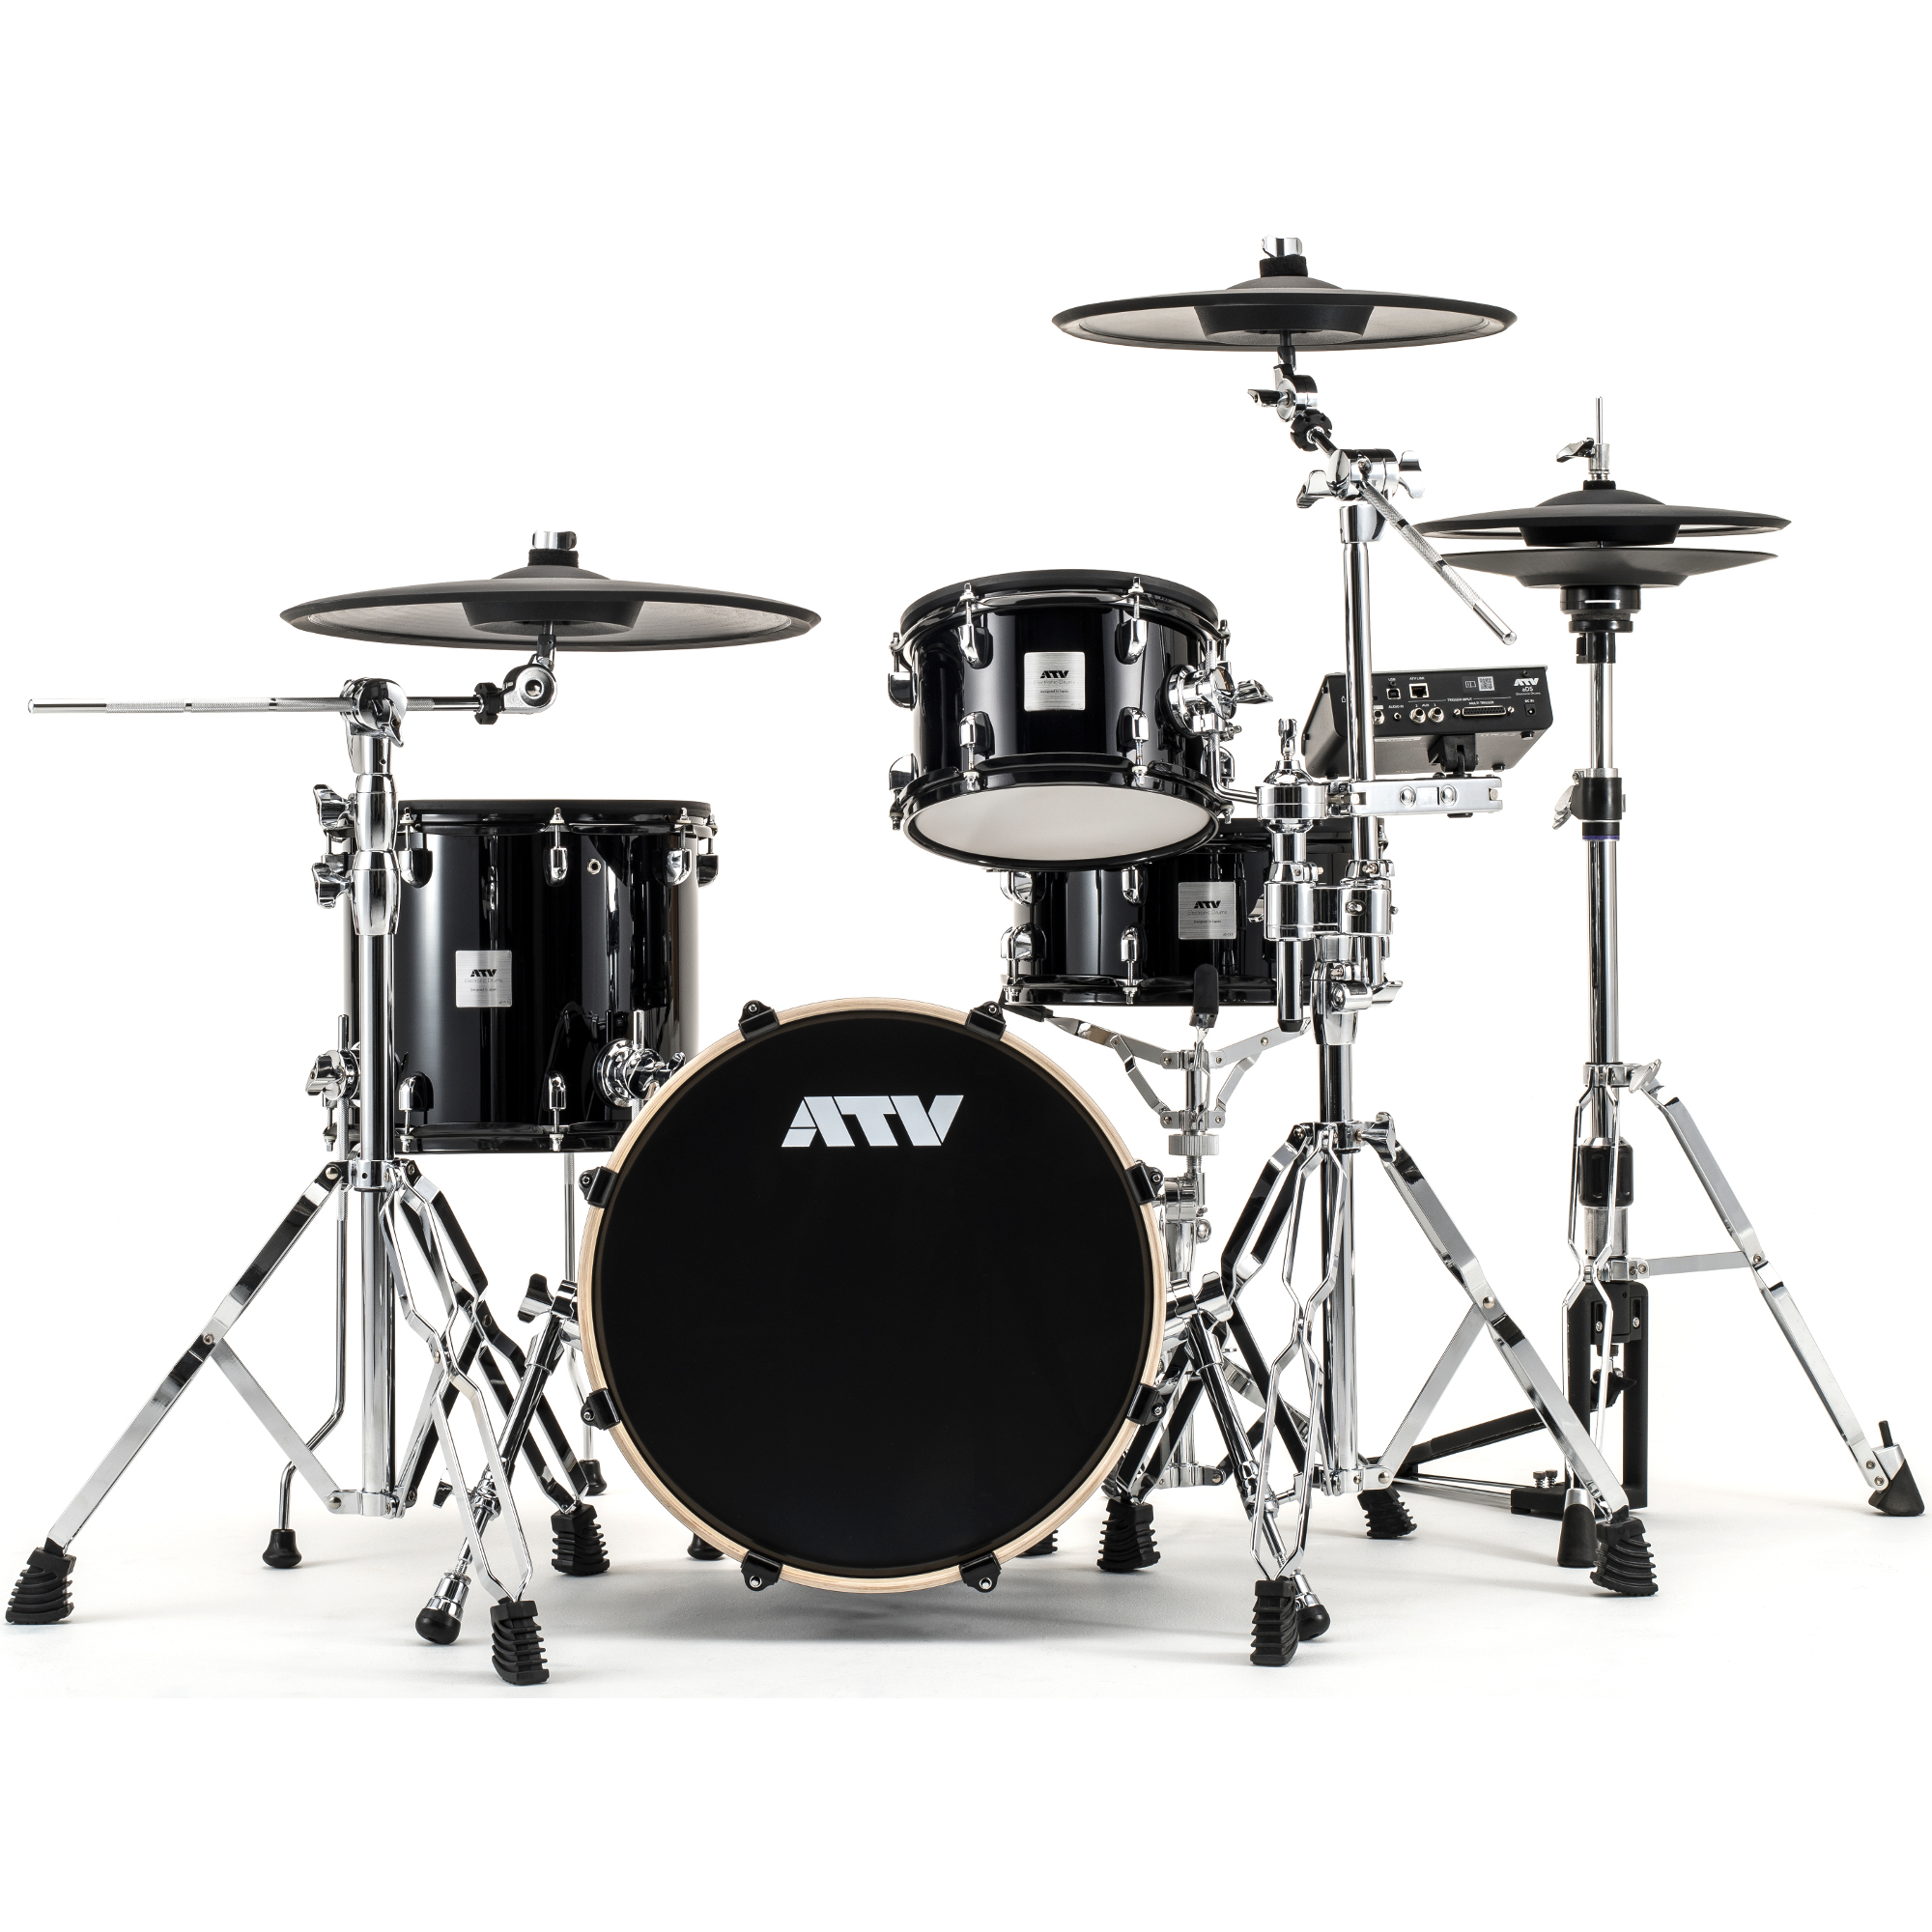 ATV aDrums E Drum Kit